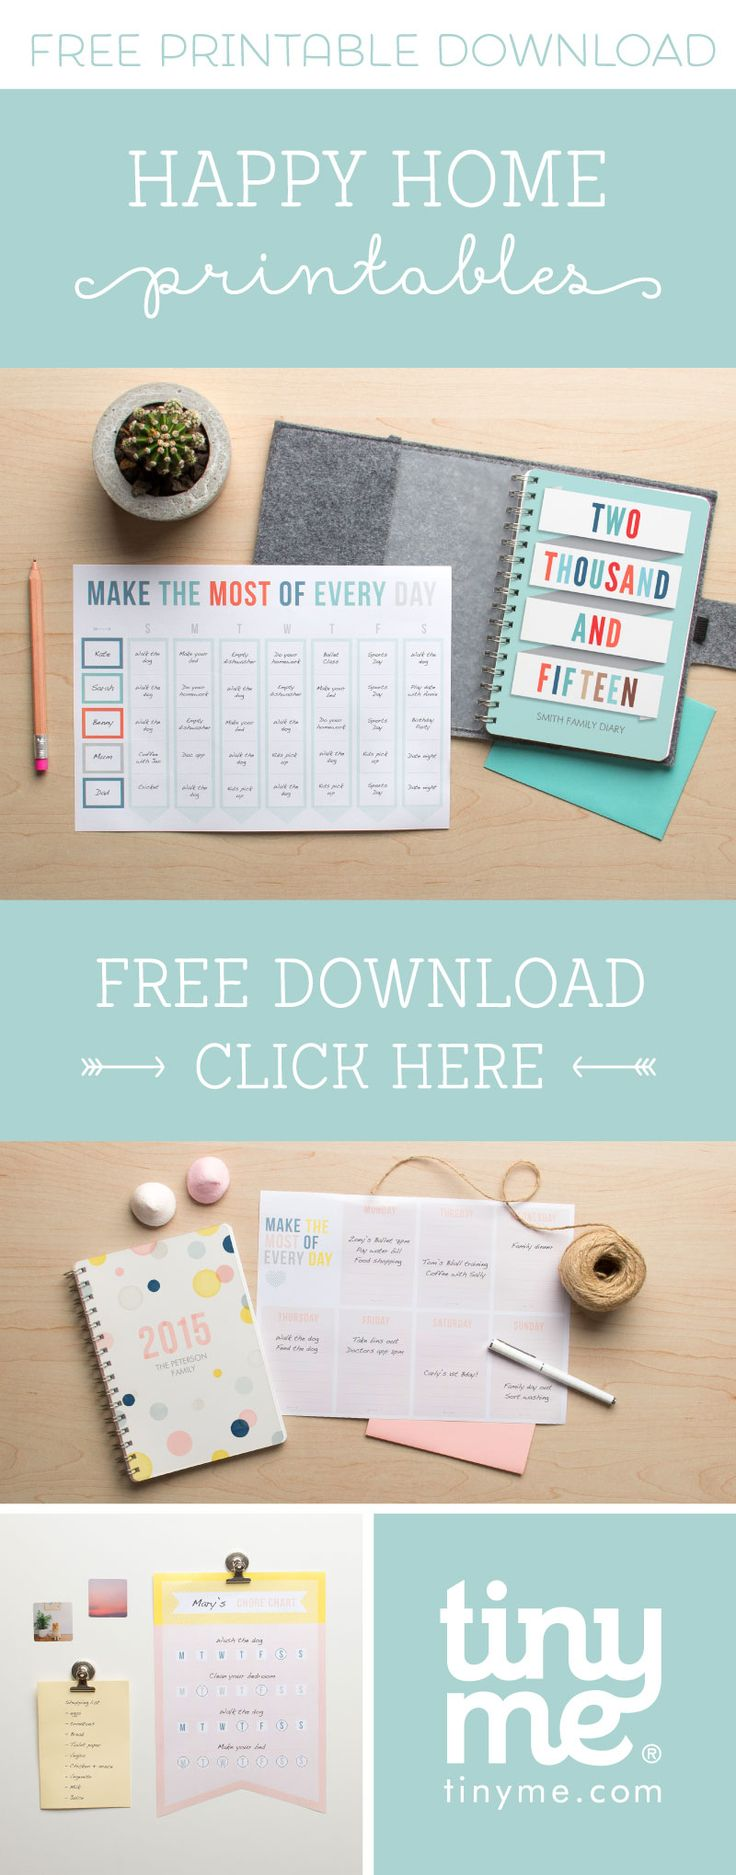 25 best ideas about time management printable on pinterest school schedule printable daily. Black Bedroom Furniture Sets. Home Design Ideas